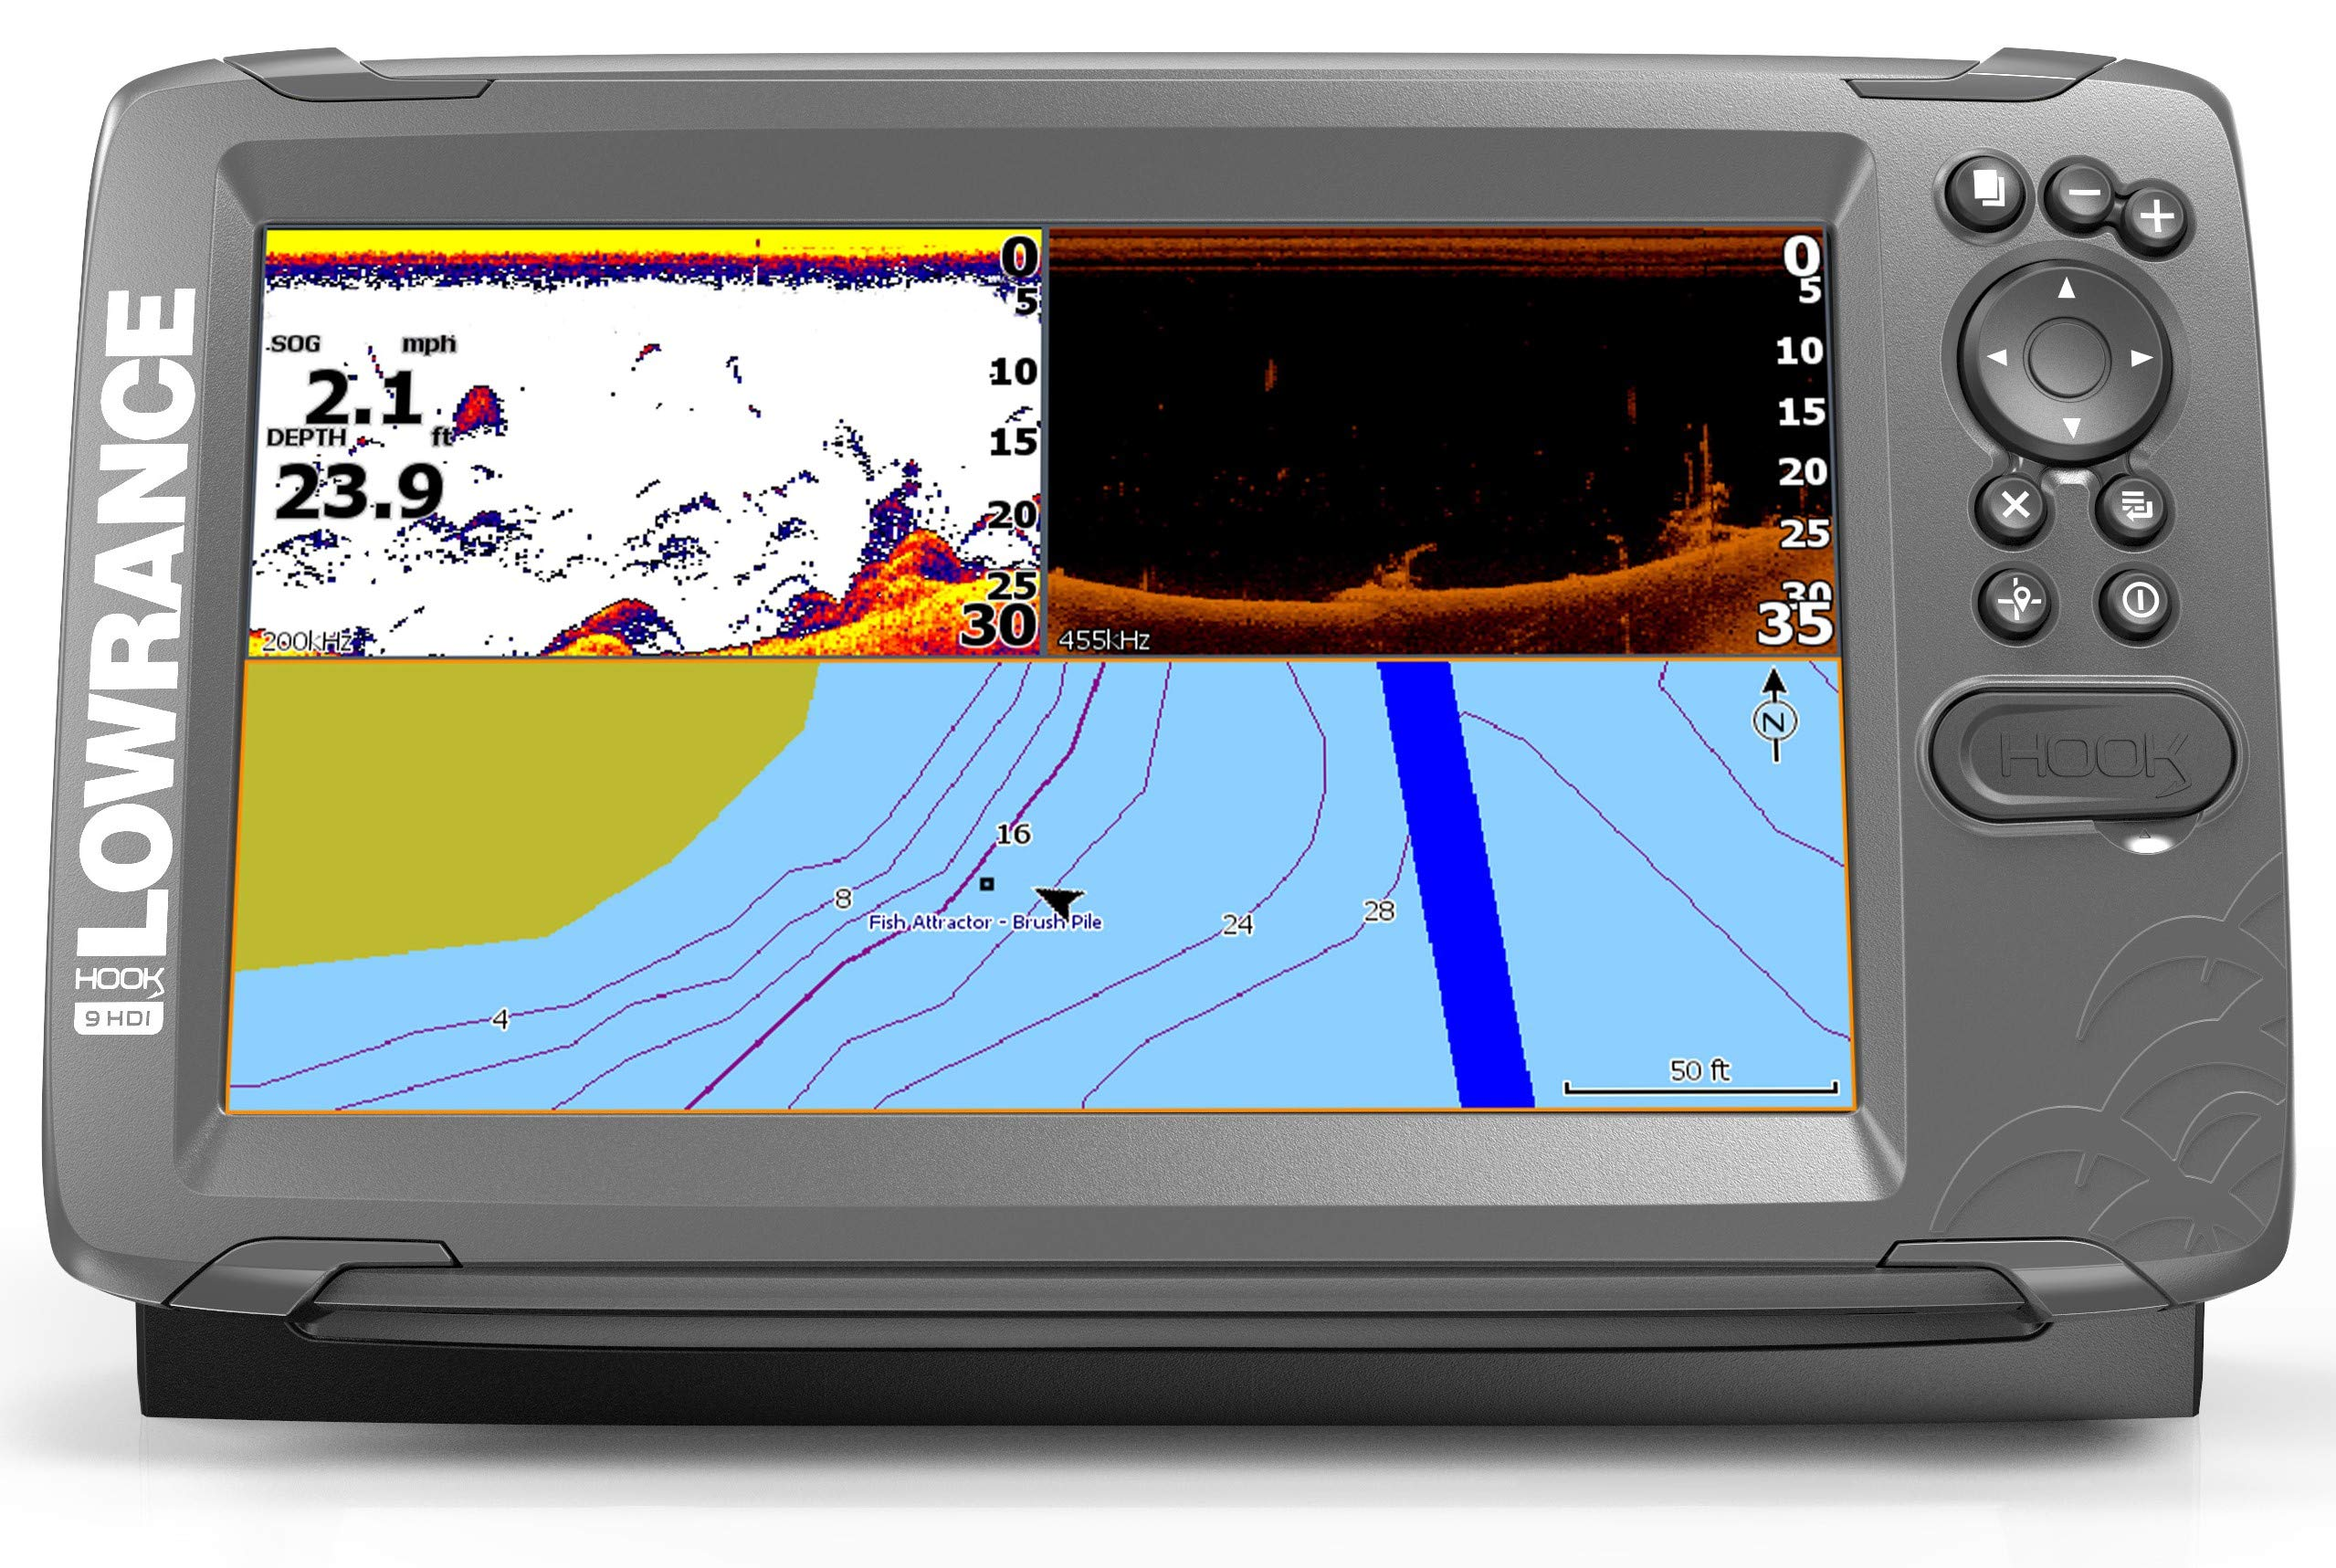 Lowrance HOOK2 9 - 9-inch Fish Finder with SplitShot Transducer and US Inland Lake Maps Installed ... by Lowrance